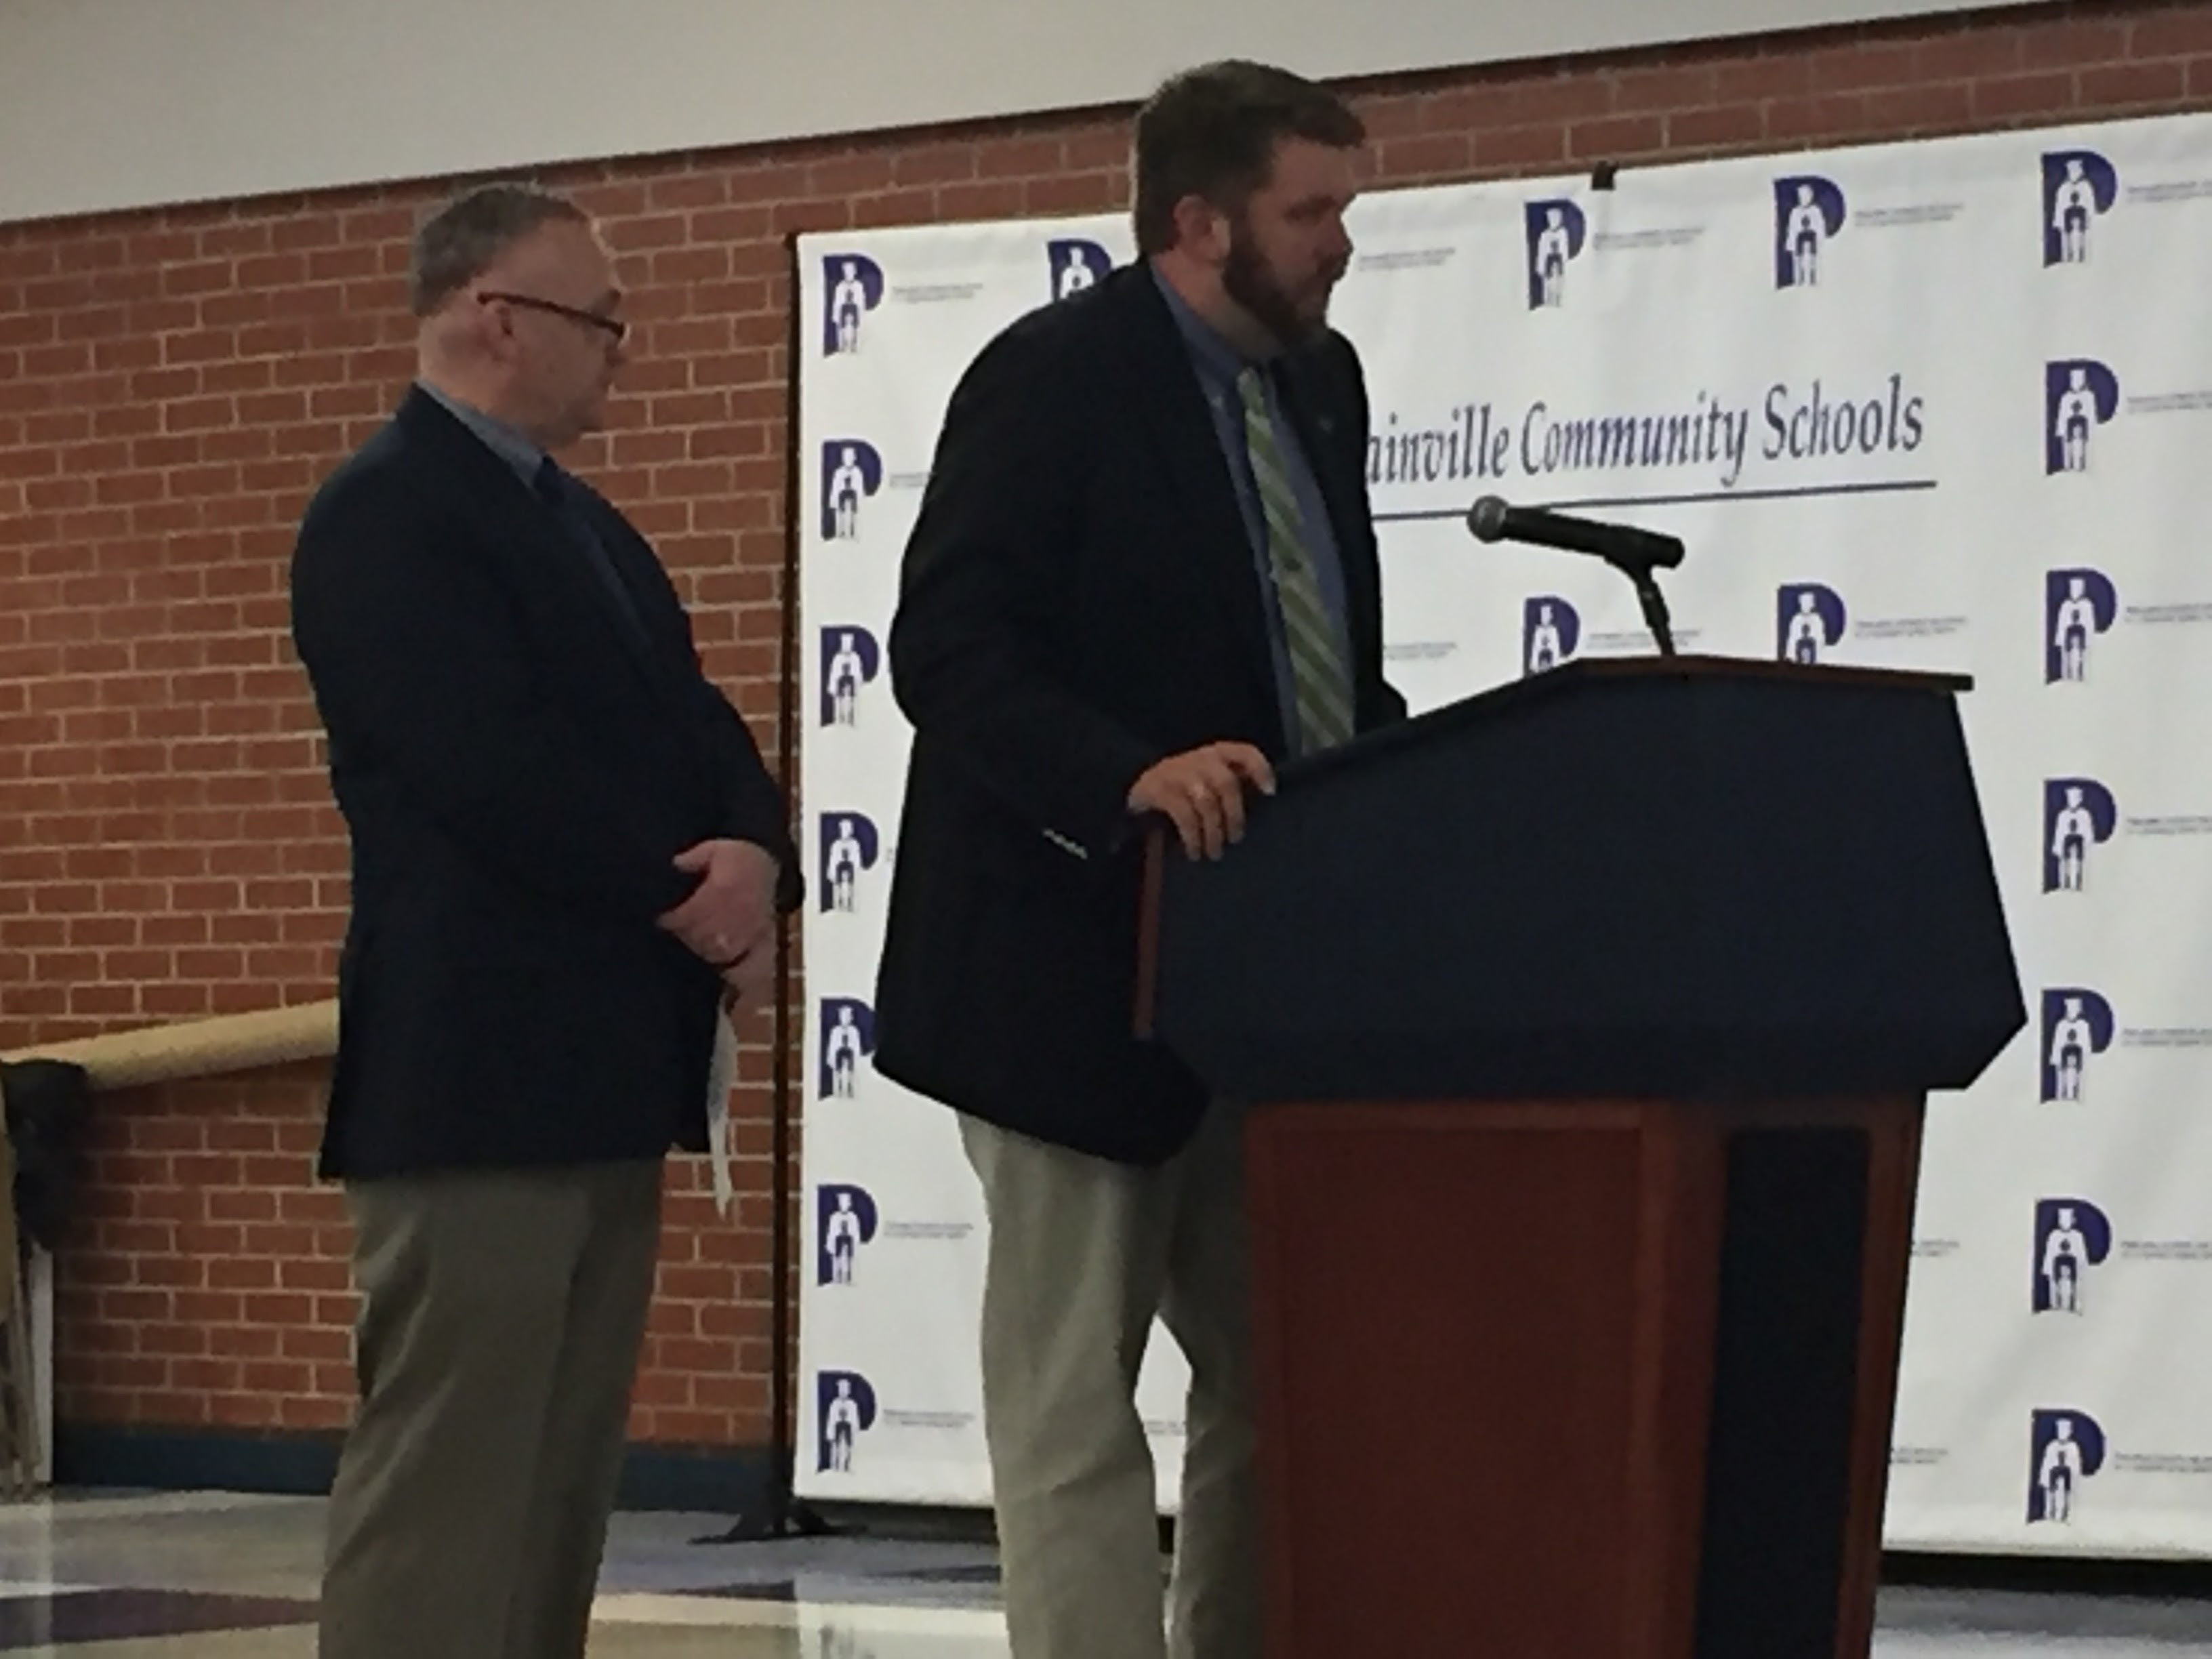 Assistant principals Jonathan Coe and Carl Johnson present a new high school bell schedule to the Plainville Board of Education, Monday, Feb. 13. |Ashley Kus, The Plainville Citizen